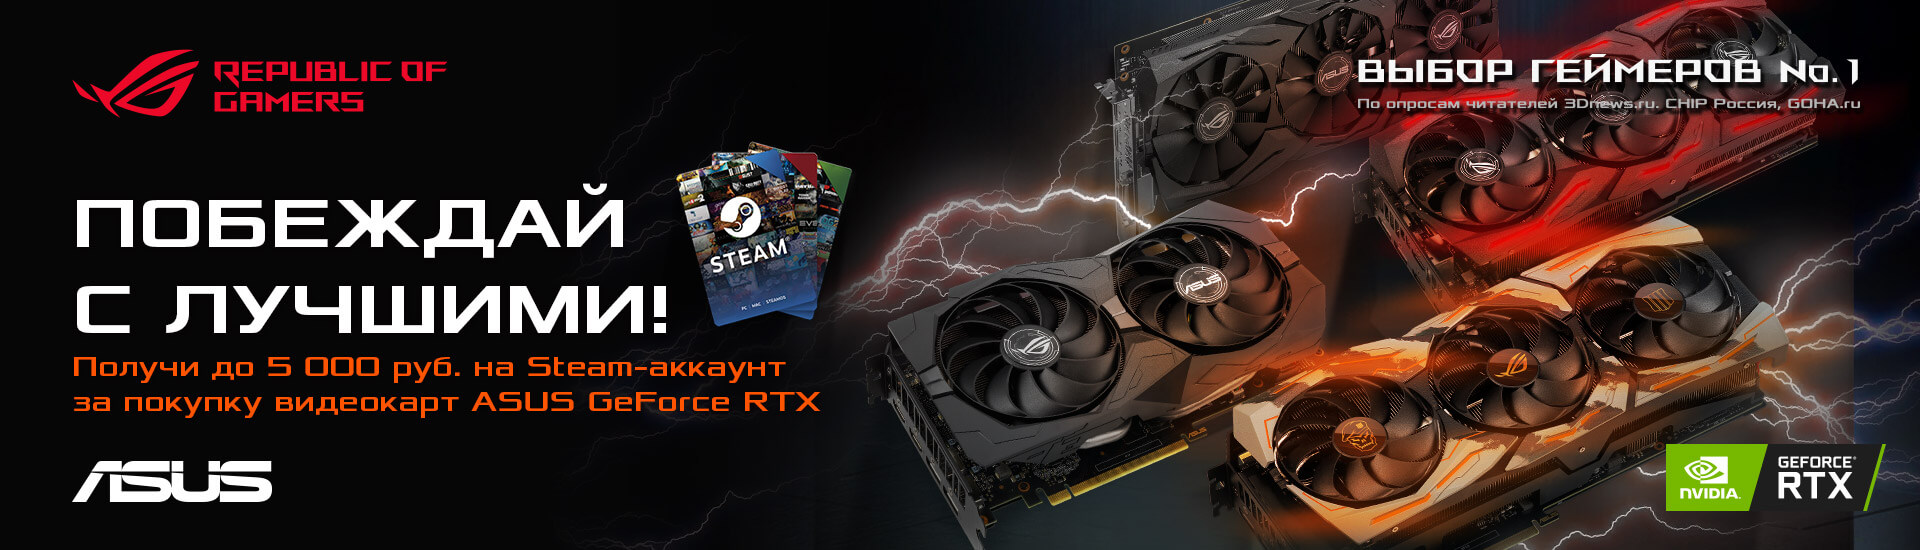 До 5000 руб в Steam за ASUS GeForce RTX